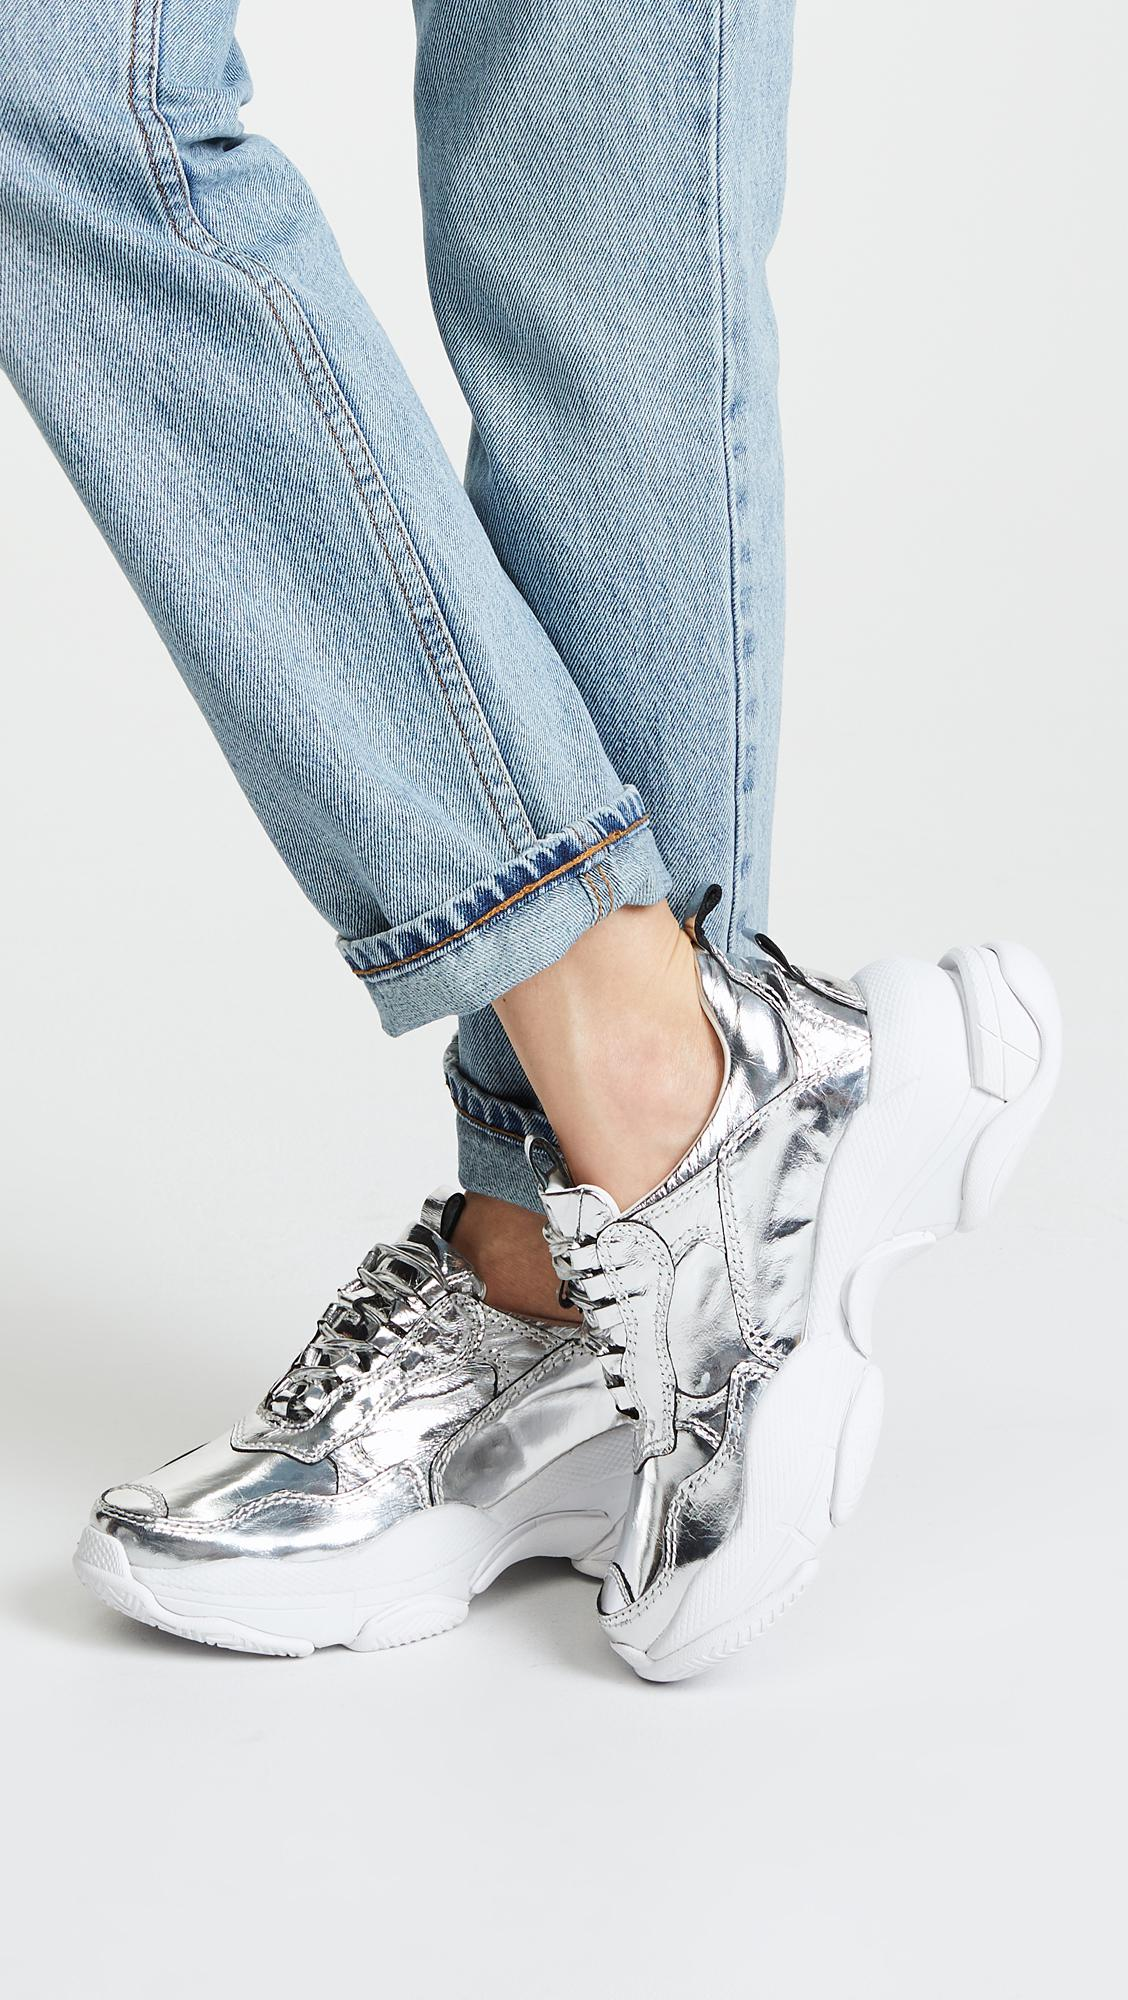 Jeffrey Campbell Leather Lo Fi Sneakers in Metallic